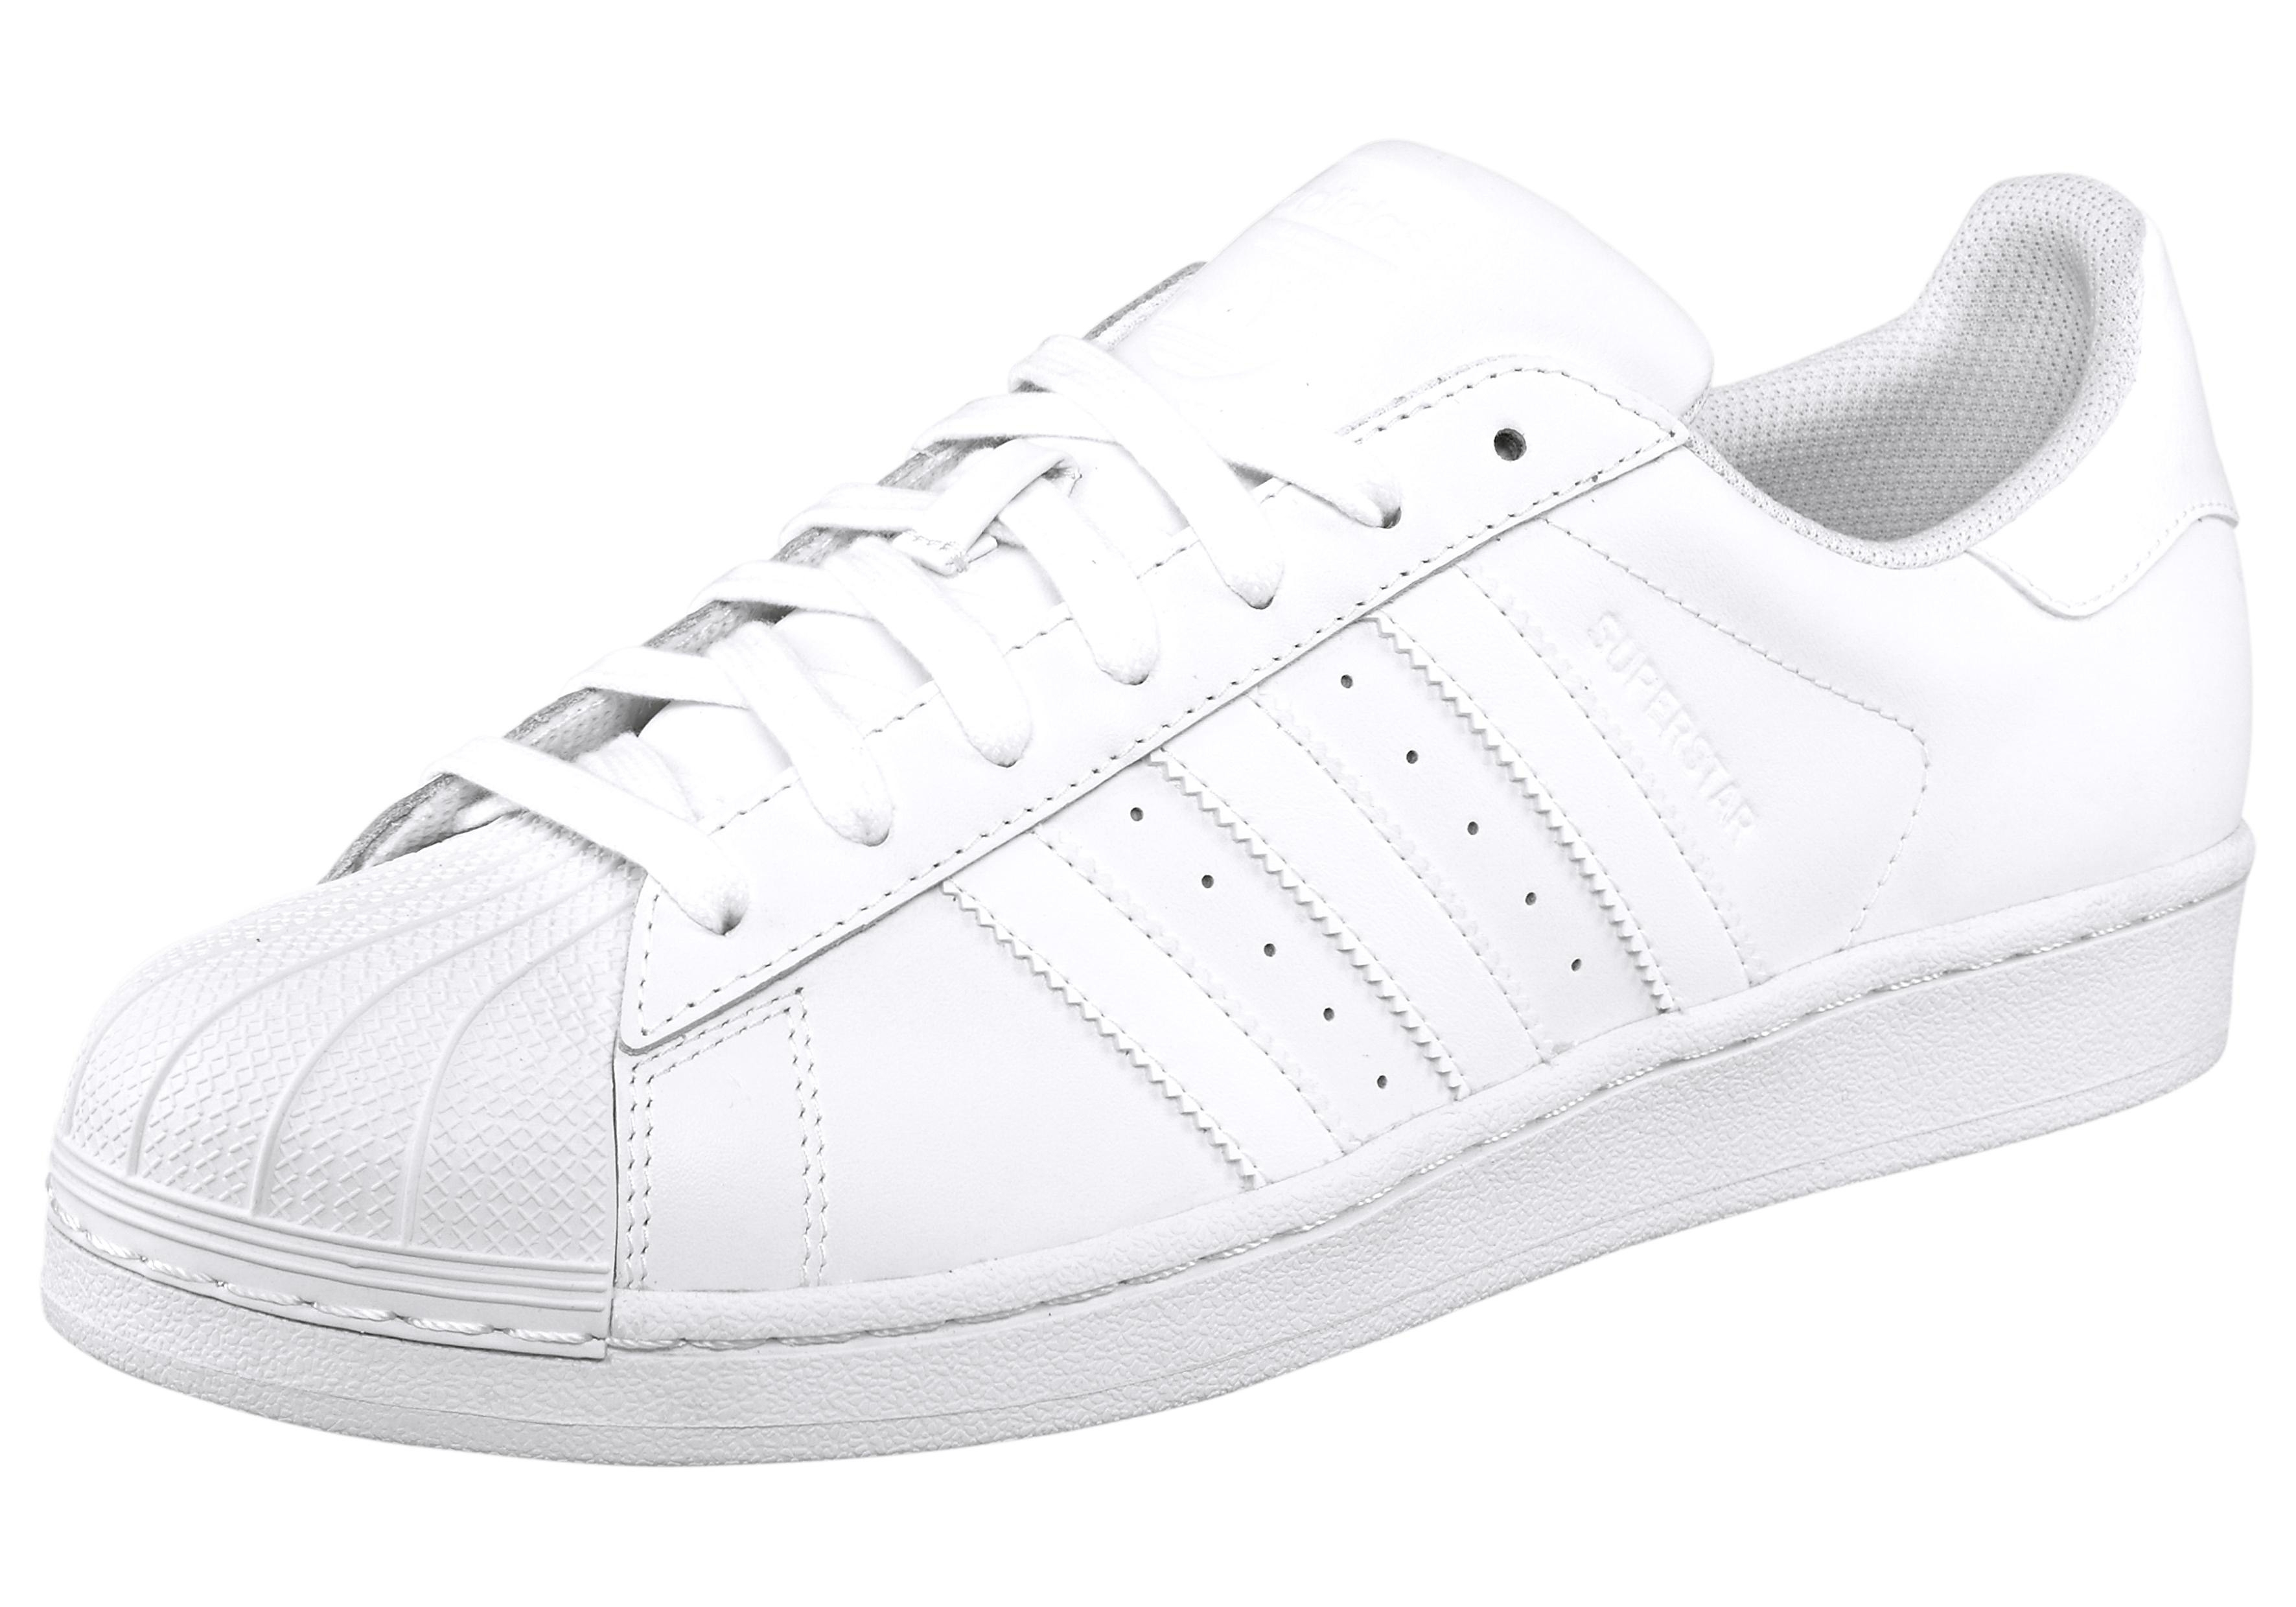 c3c9f903a61 ... adidas Originals sneakers »Superstar W 1«, adidas Originals sneakers » Superstar W 1«, adidas Originals sneakers »Superstar W 1«